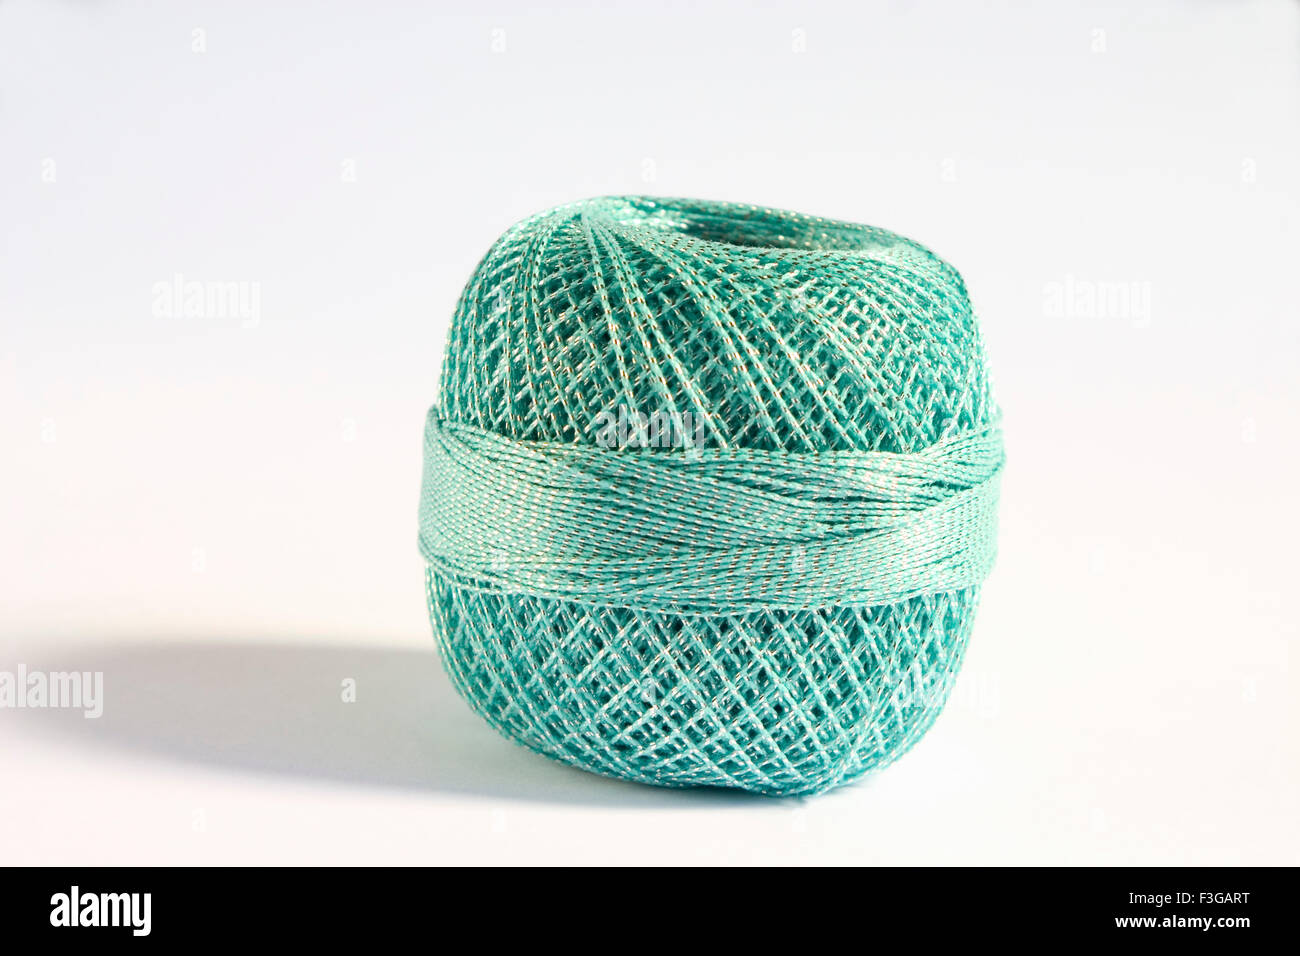 Concept ; alone circle one separate single sole round shape crochet cotton thread on white background - Stock Image